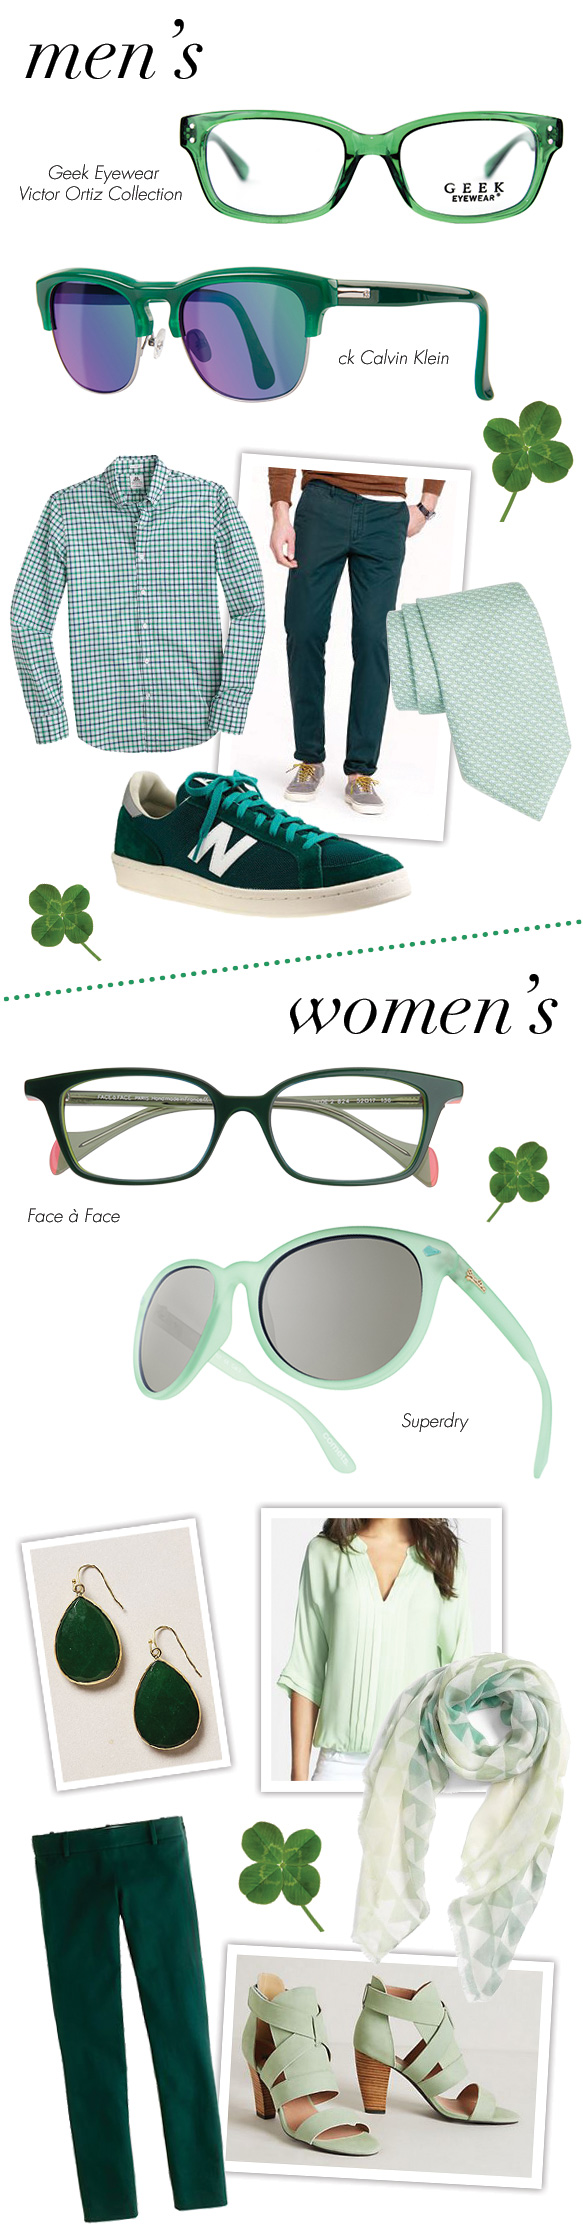 Geek Eyewear Victor Ortiz Collection (Geek VO2), ck Calvin Klein (1198S), Face à Face (Chloe2), Superdry (Comets)